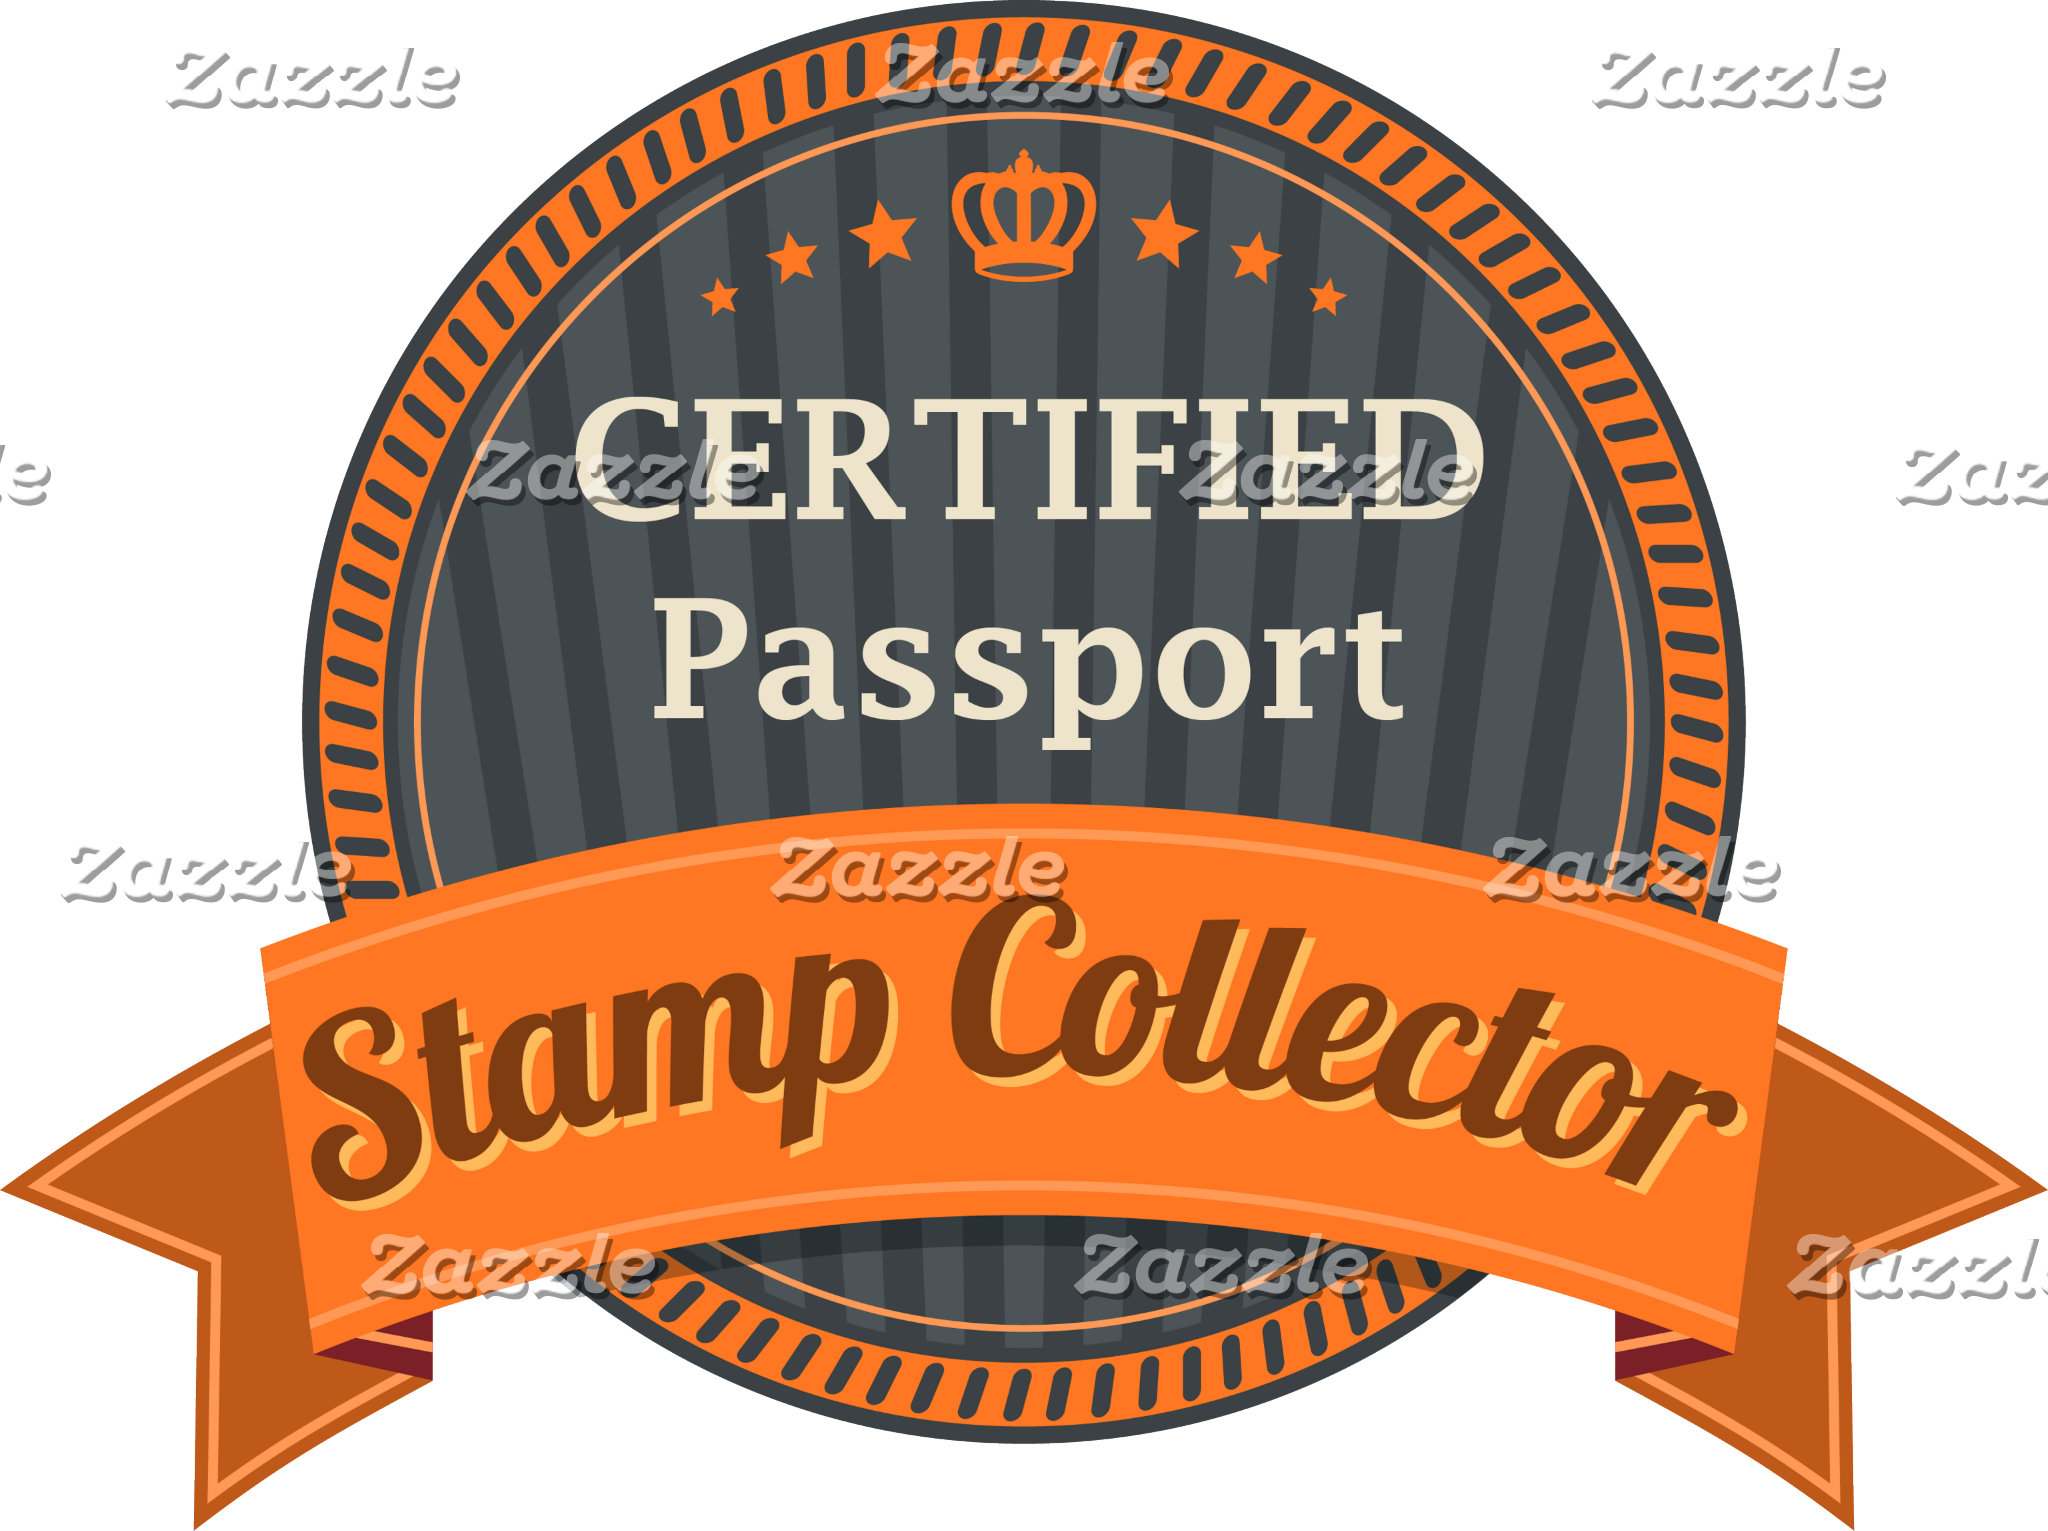 Passport Stamp Collector